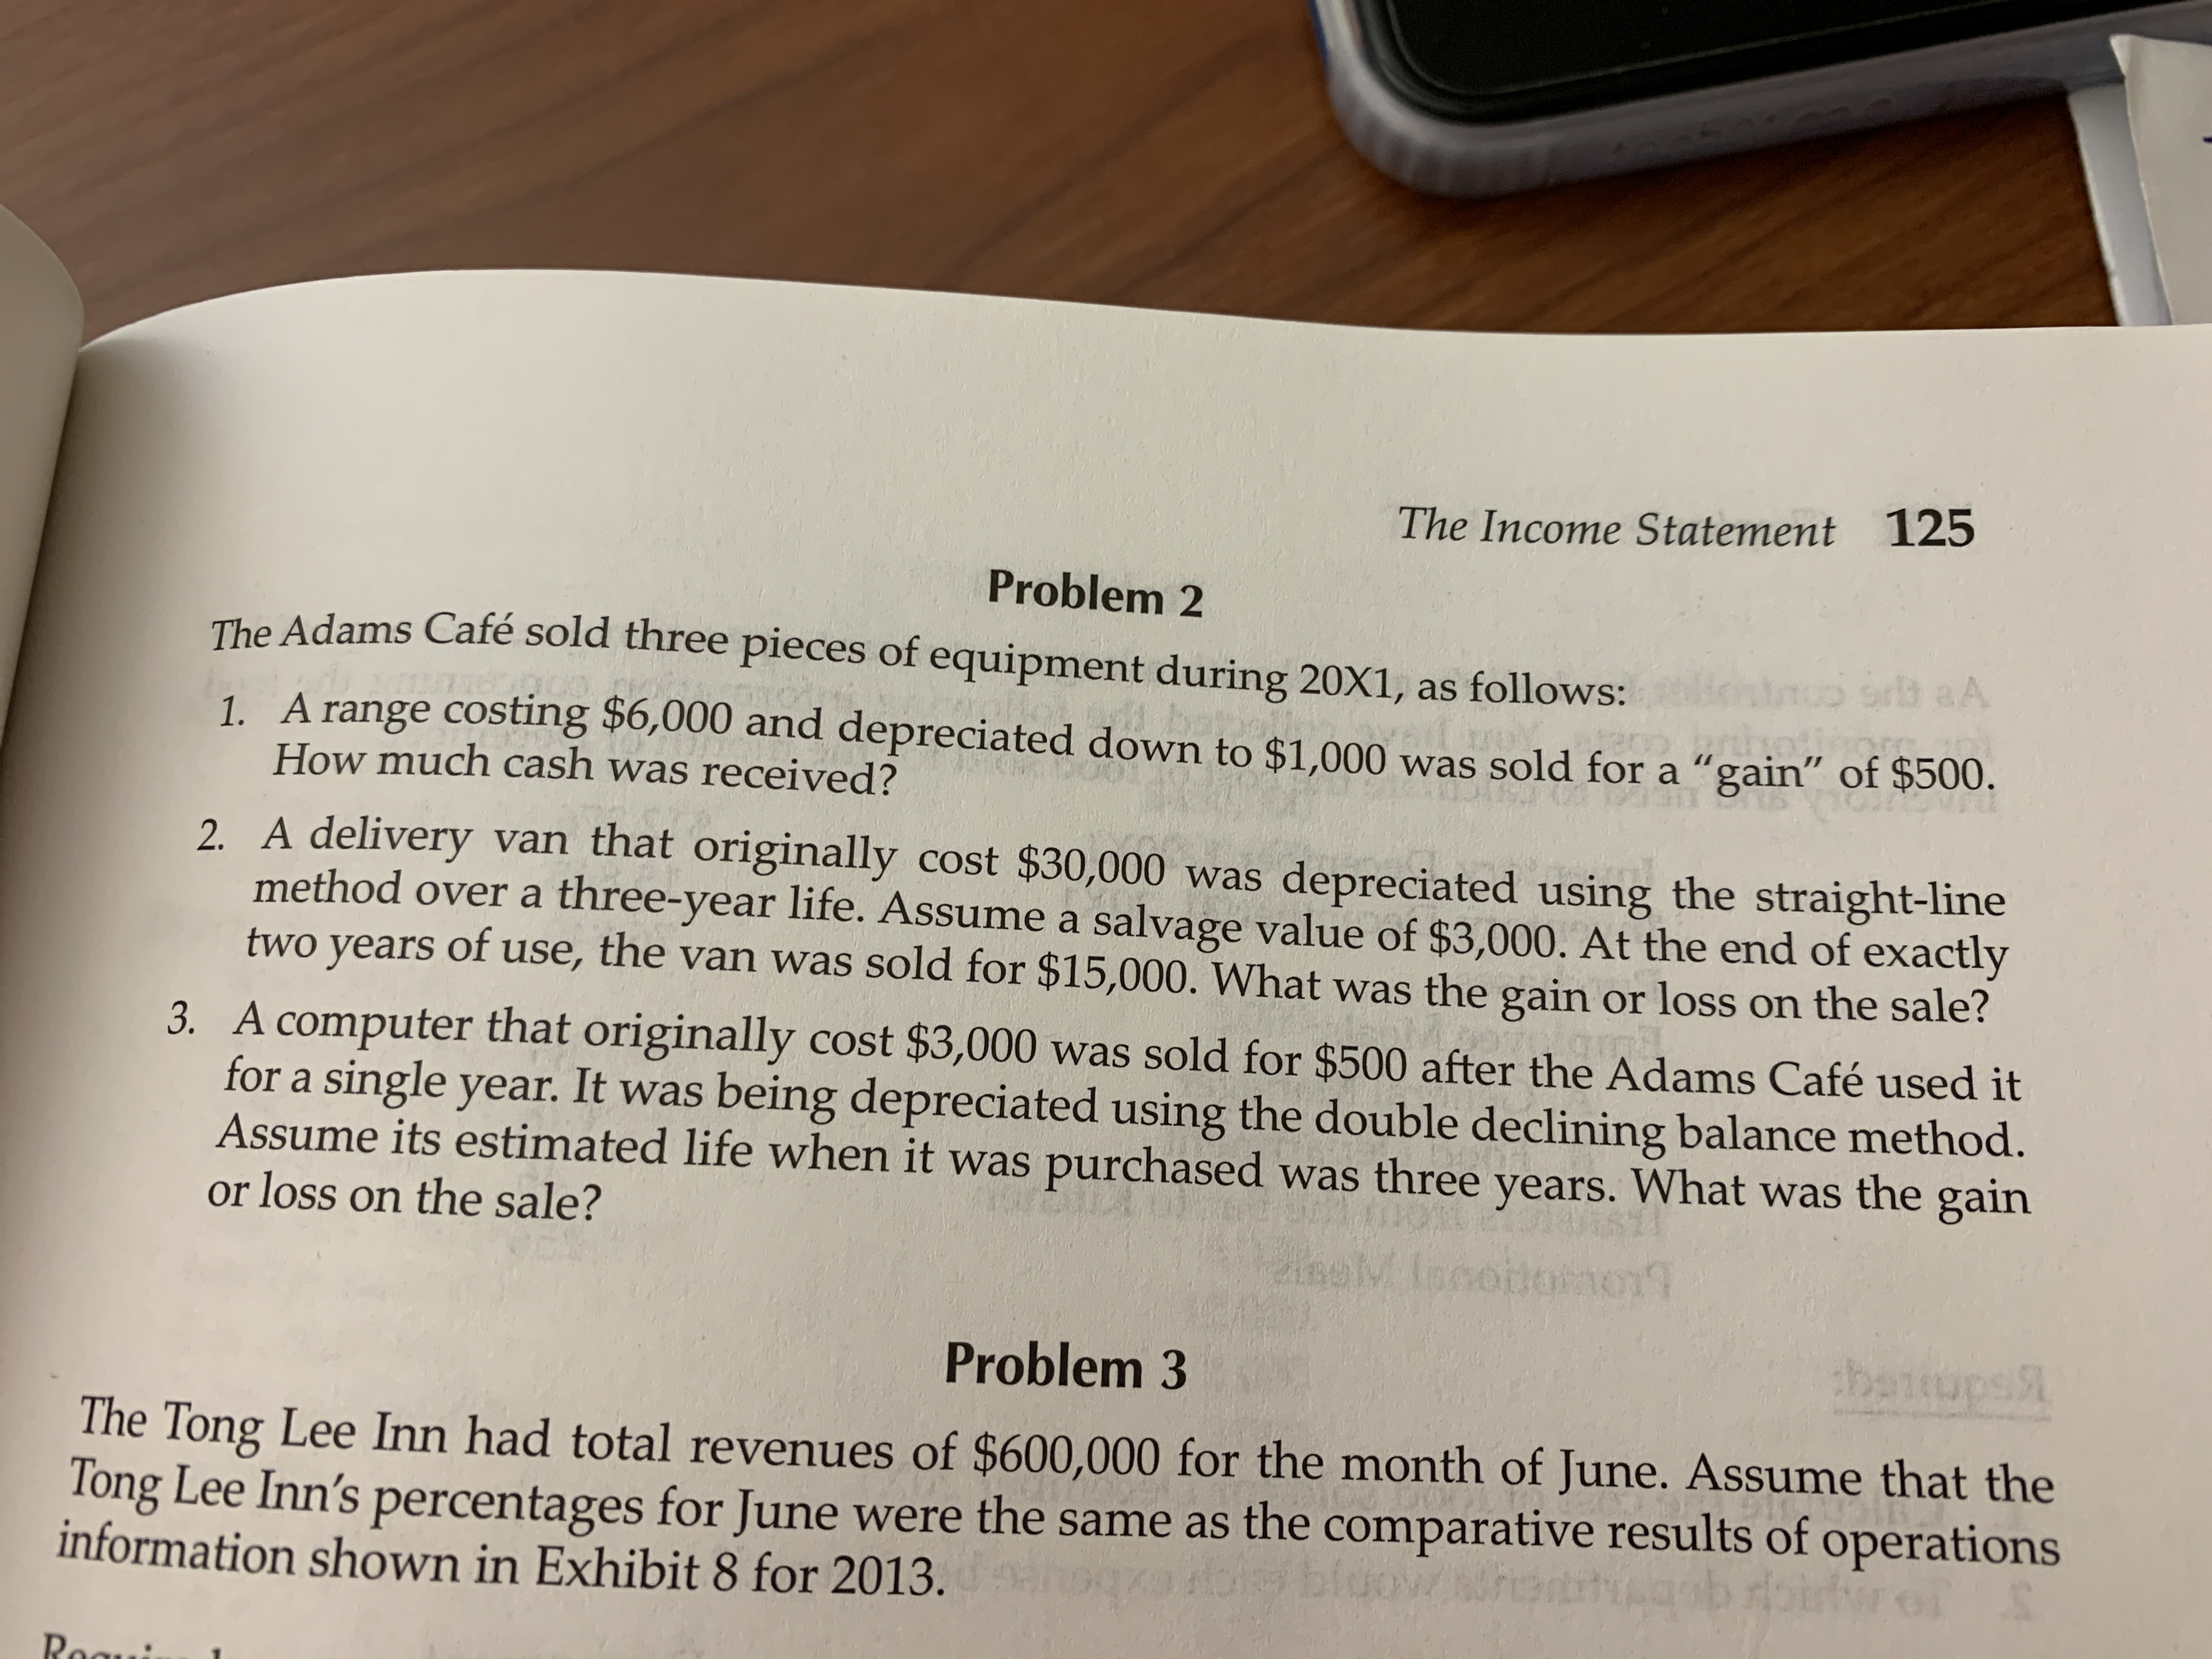 """The Income Statement 125 Problem 2 The Adams Café sold three pieces of equipment during 20X1, as follows: ntmoo ort aA 1. A range costing $6,000 and depreciated down to $1.000 was sold for a """"gain"""" of $500. How much cash was received? CO: 2. A delivery van that originally cost $30,000 was depreciated using the straight-line method over a three-year life. Assume a salvage value of $3,000. At the end of exactly two years of use, the van was sold for $15,000. What was the gain or loss on the sale? 3. A computer that originally cost $3,000 was sold for $500 after the Adams Café used it for a single year. It was being depreciated using the double declining balance method. Assume its estimated life when it was purchased was three years. What was the gain or loss on the sale? Problem 3 banupsR The Tong Lee Inn had total revenues of $600,000 for the month of June. Assume that the Tong Lee Inn's percentages for June were the same as the comparative results of operations information shown in Exhibit 8 for 2013."""